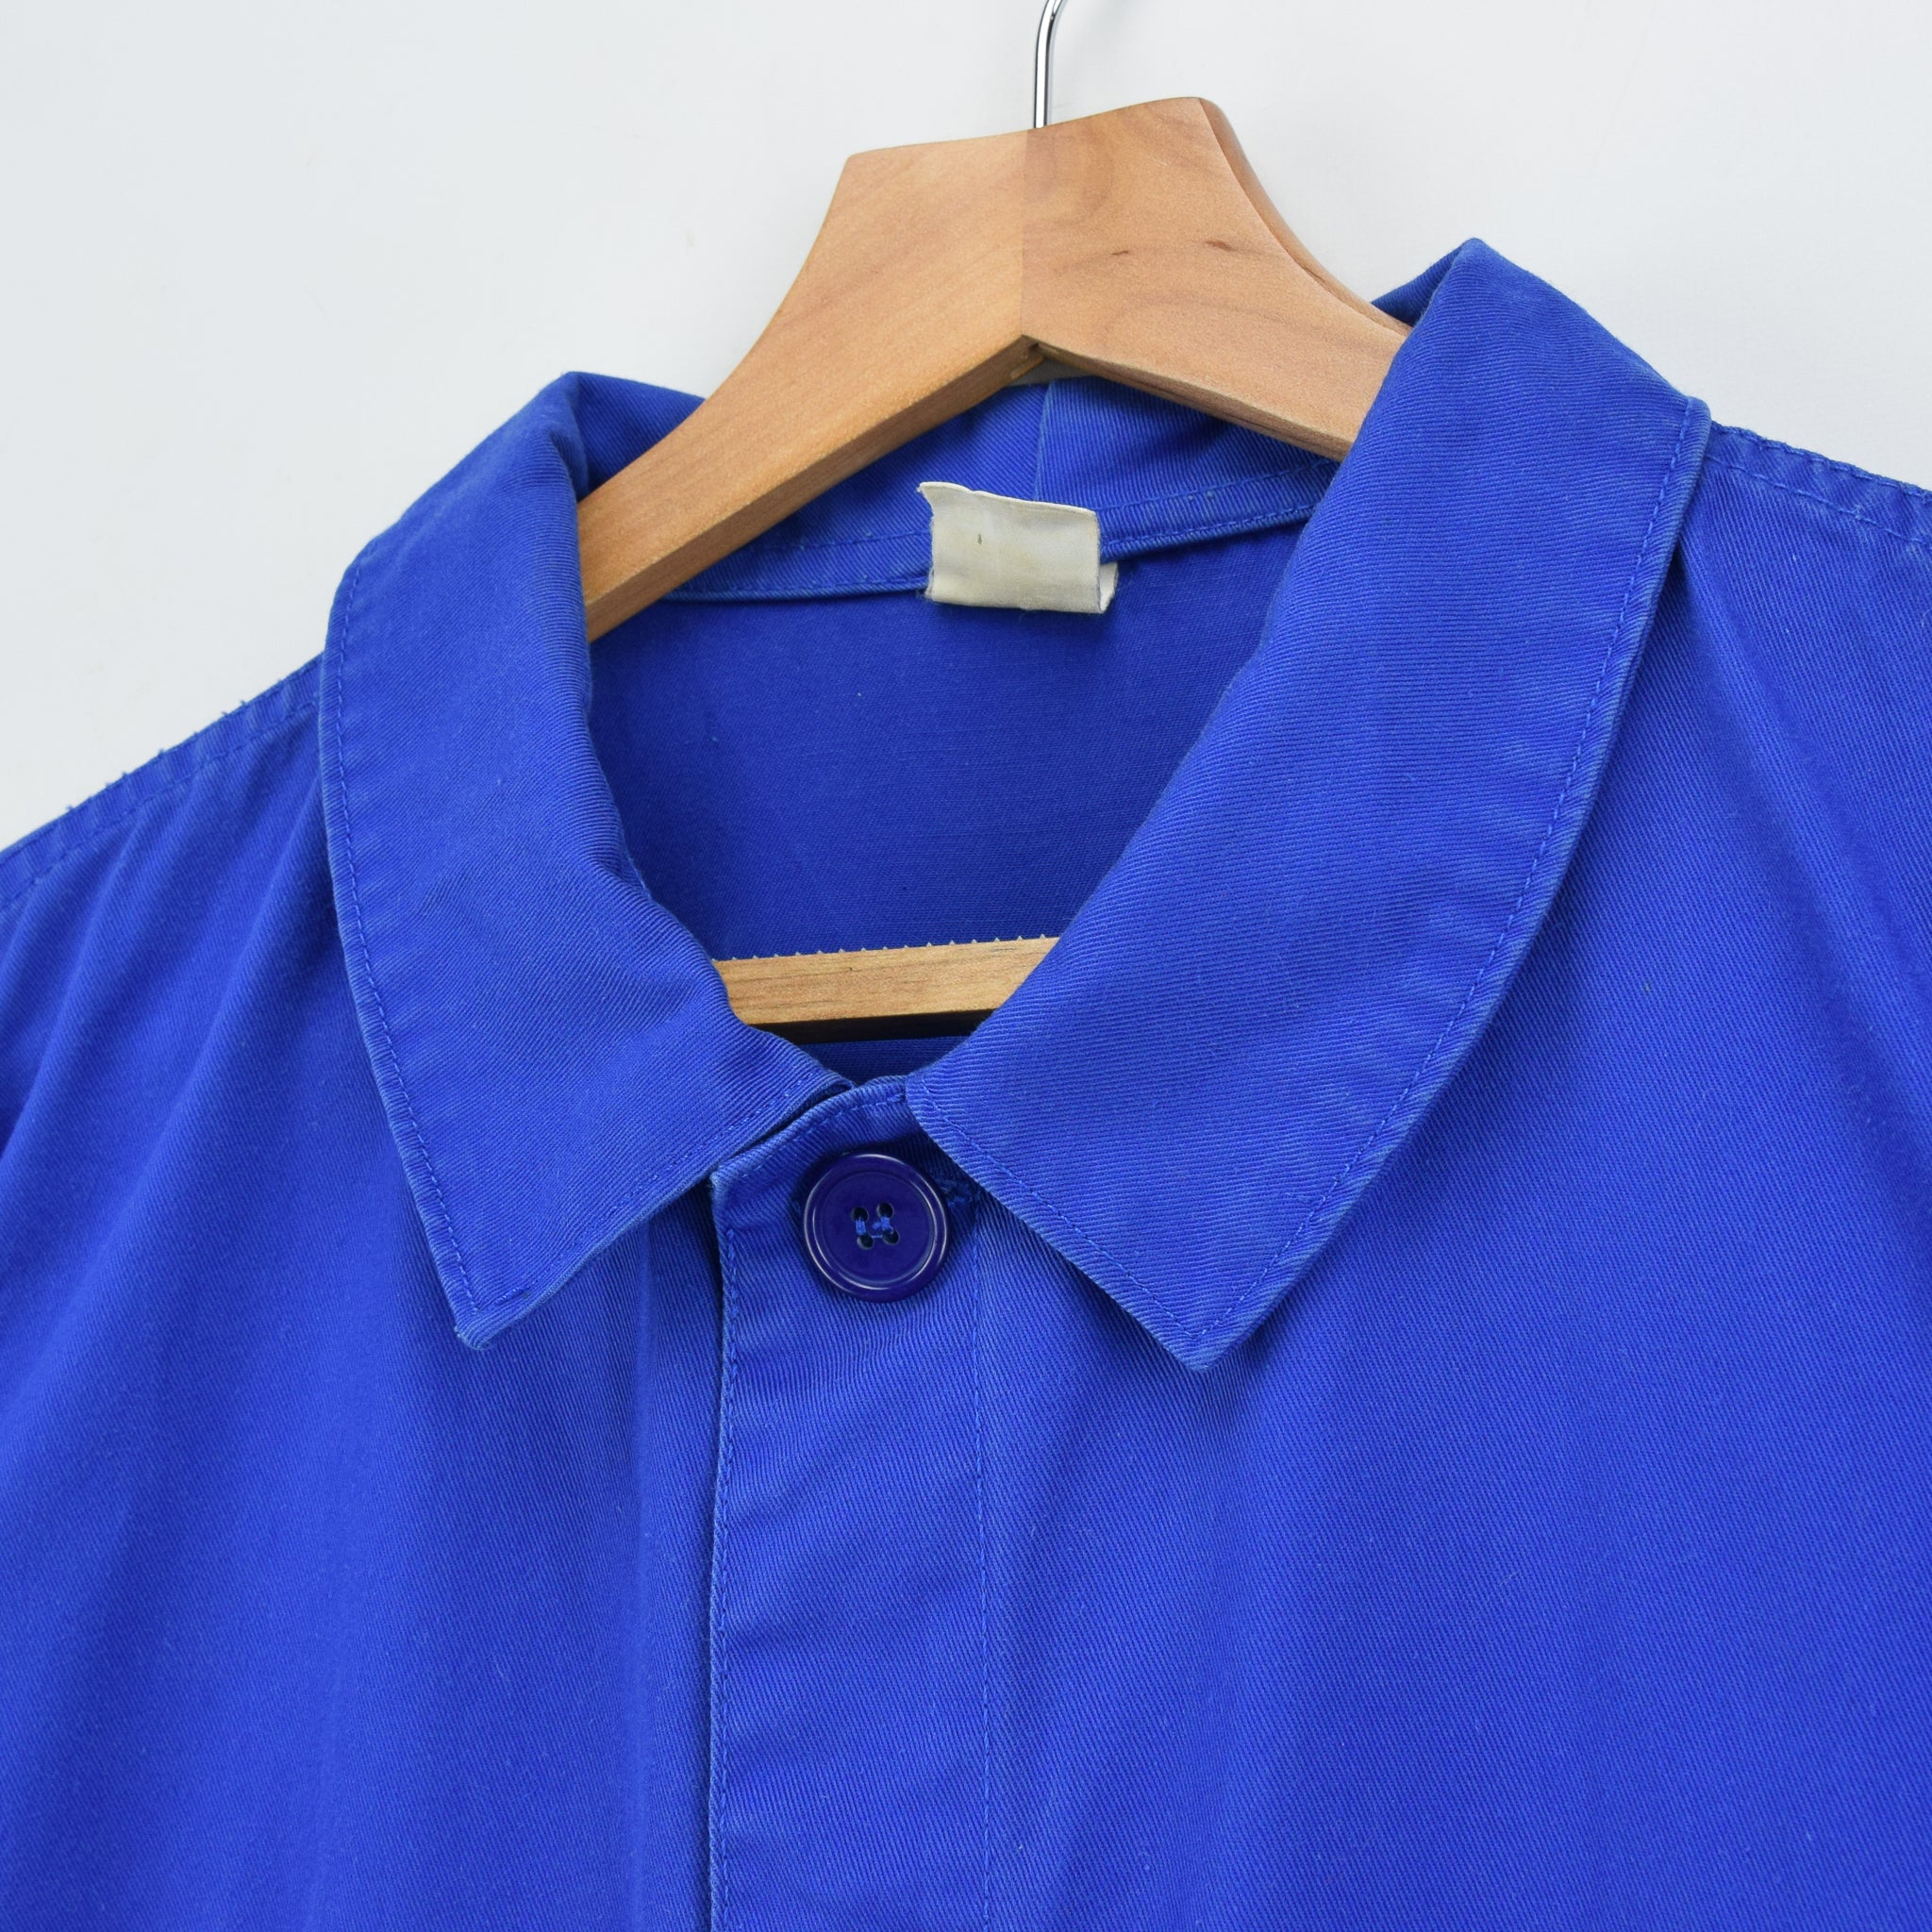 Vintage Bright Blue French Style Worker Sanforized Cotton Chore Jacket L collar